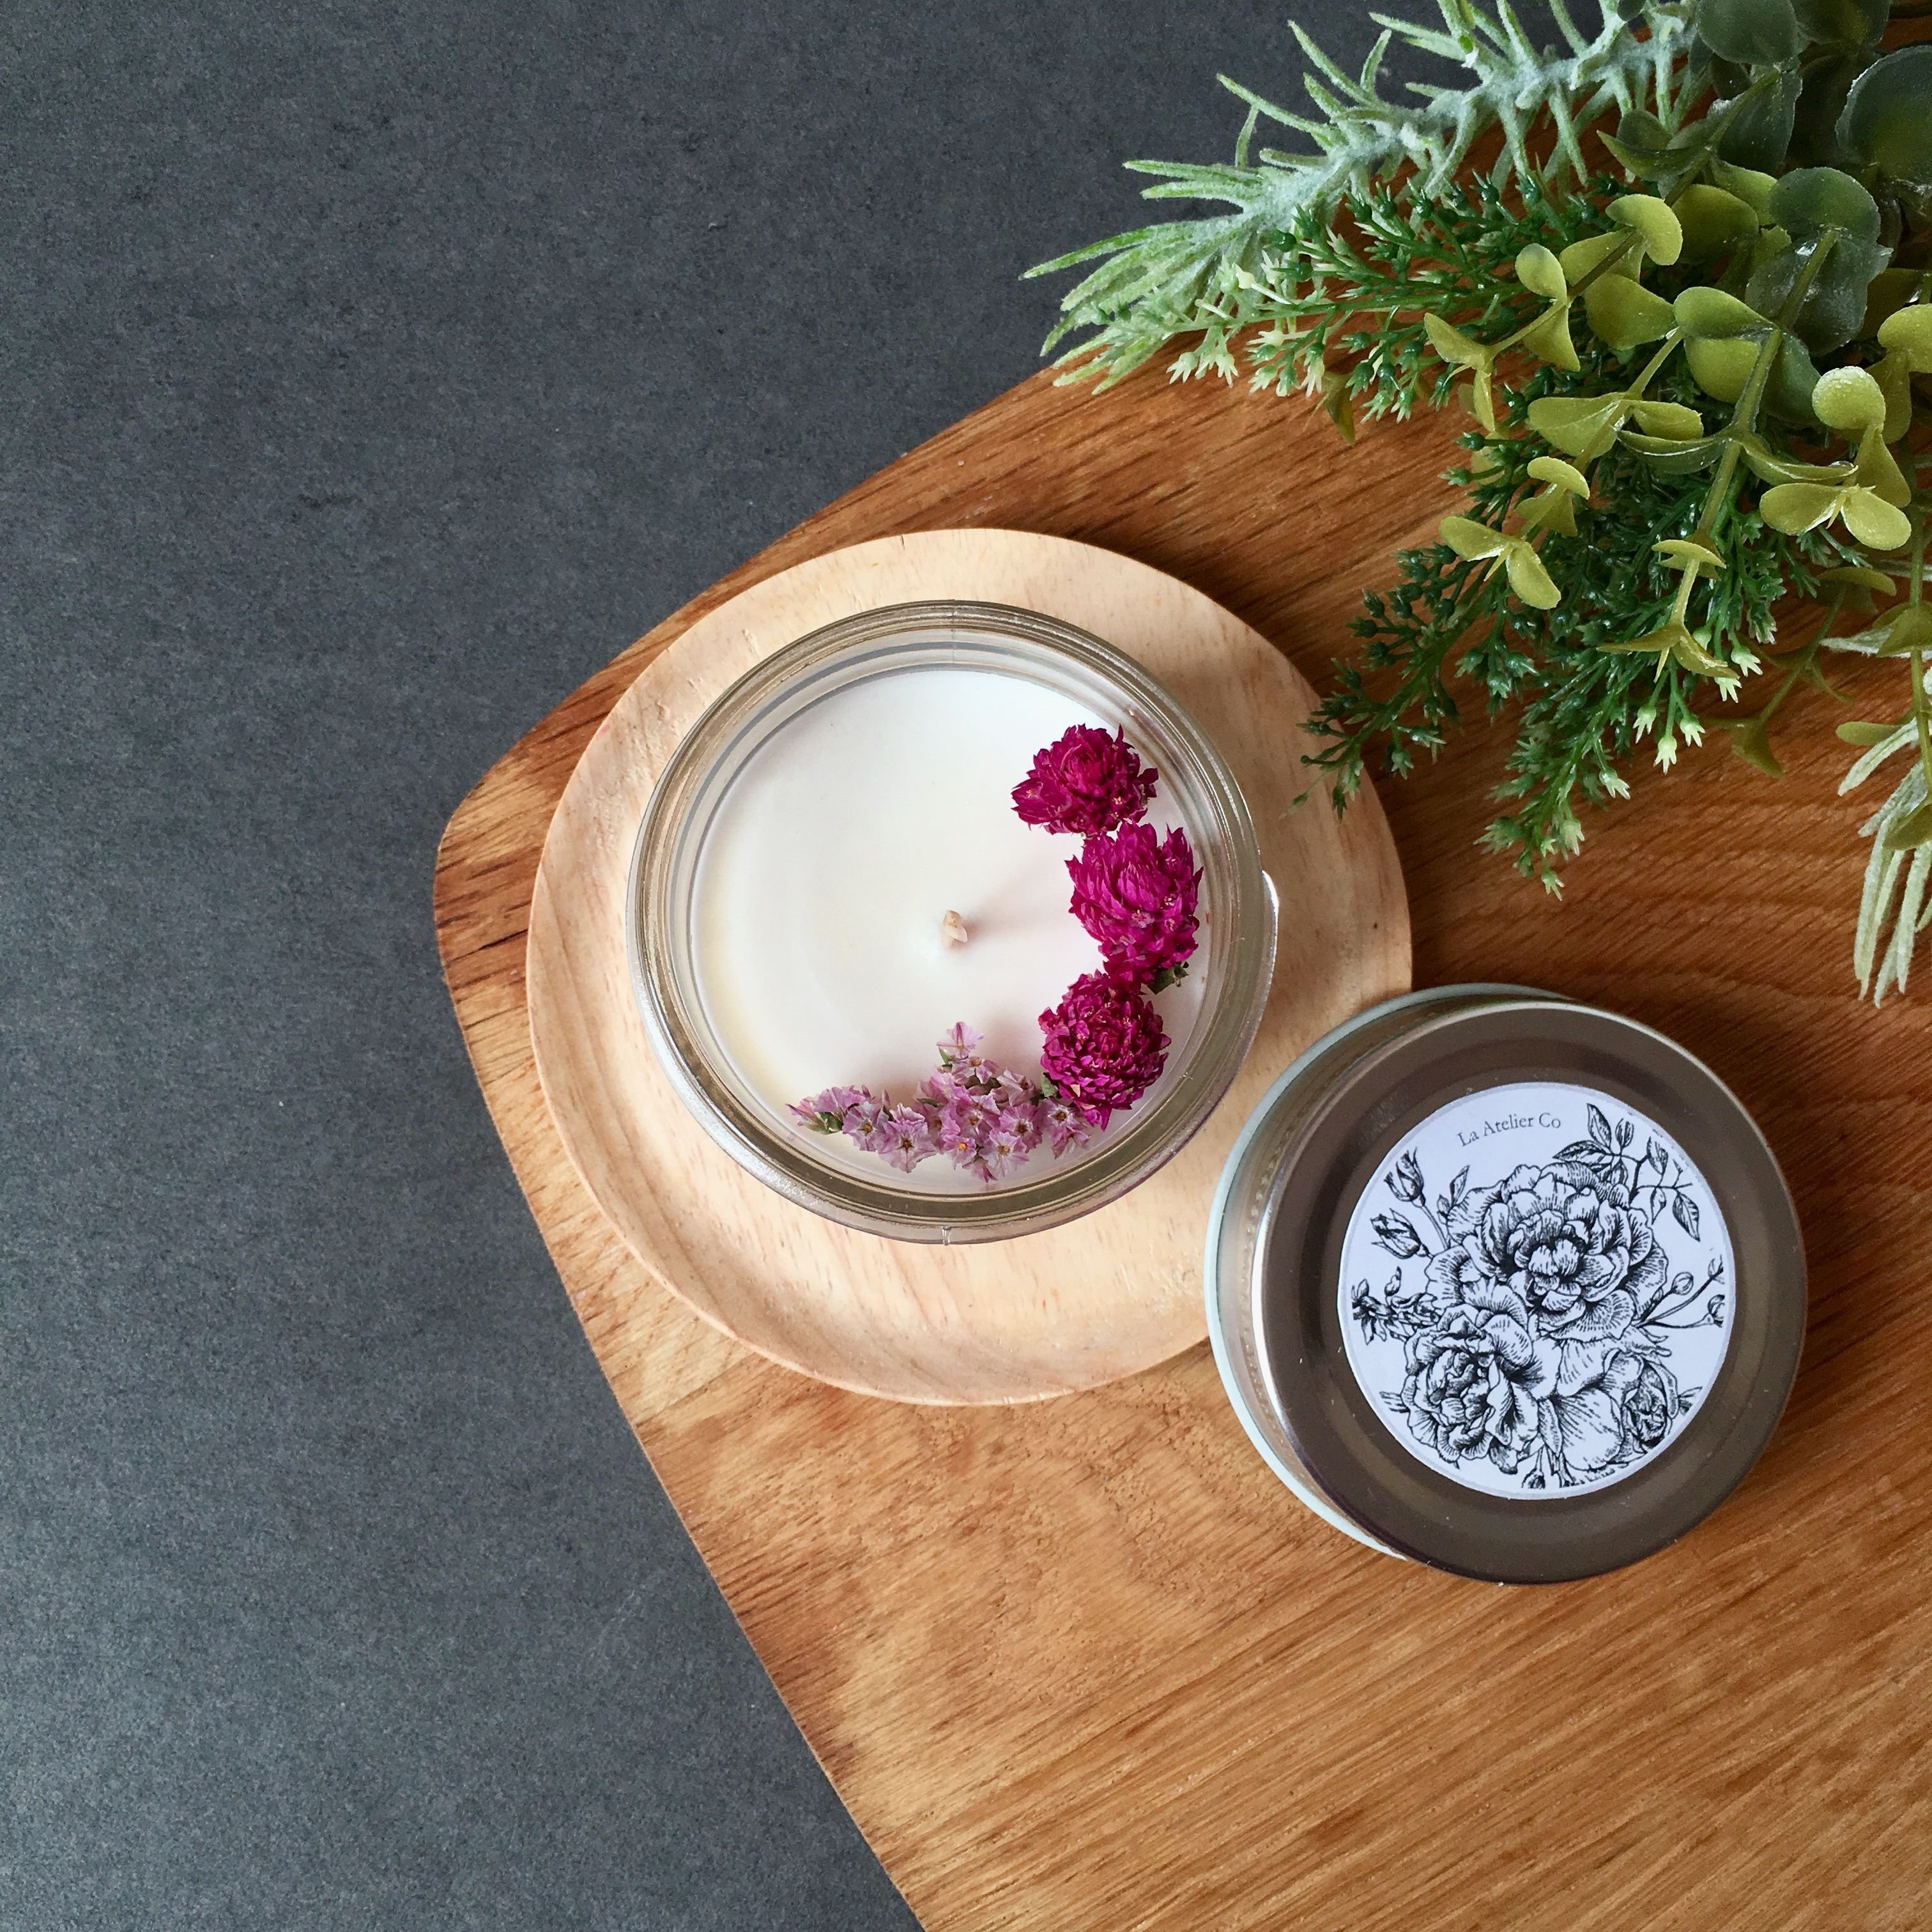 Botanical Infused Favors Gift Ideas For Bespoke Scents: Botanical Candles With Dried Flowers Infused For The Boost